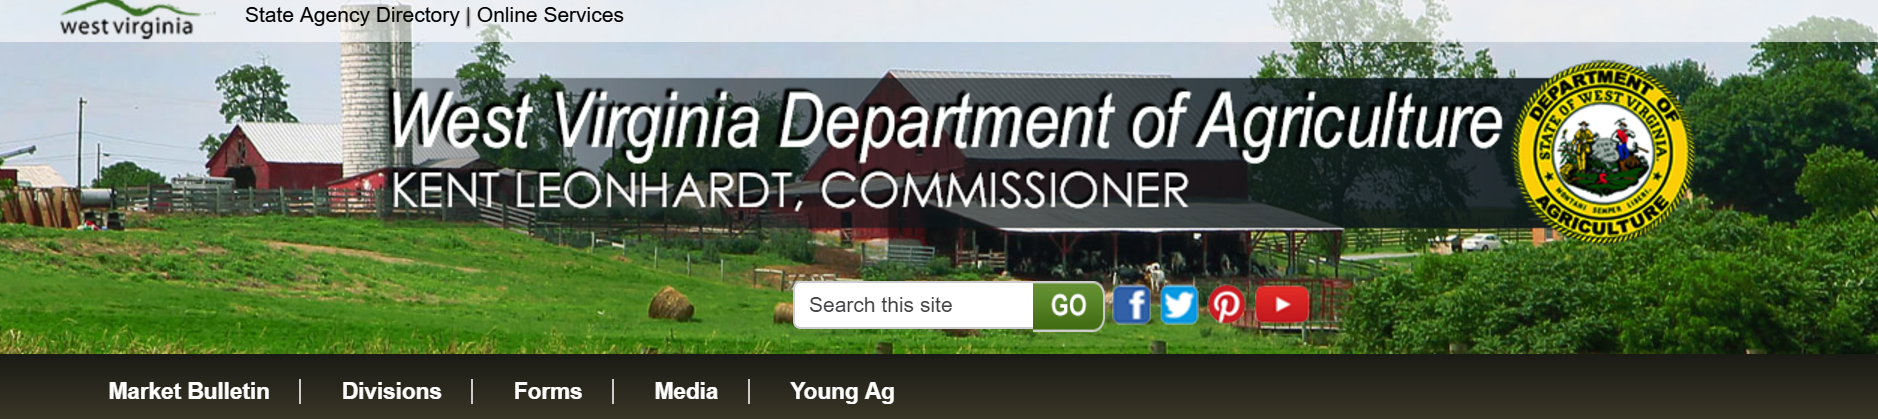 WV Department of Agriculture